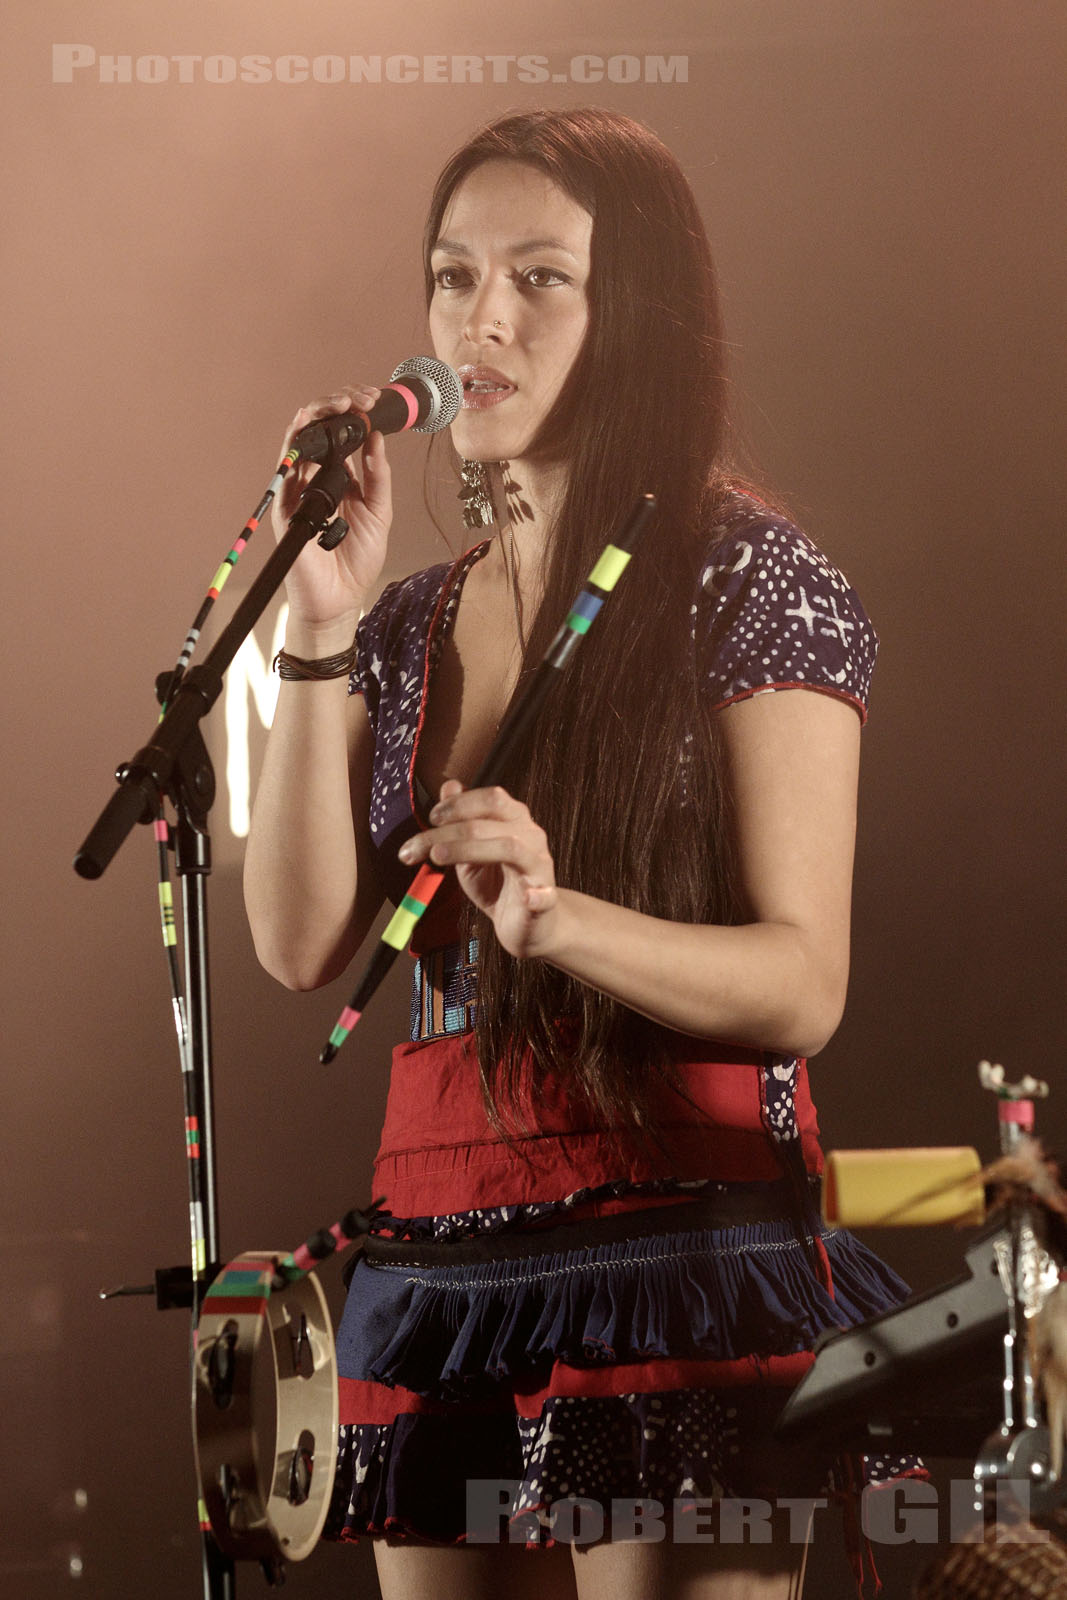 MAI LAN - 2012-11-11 - PARIS - La Cigale